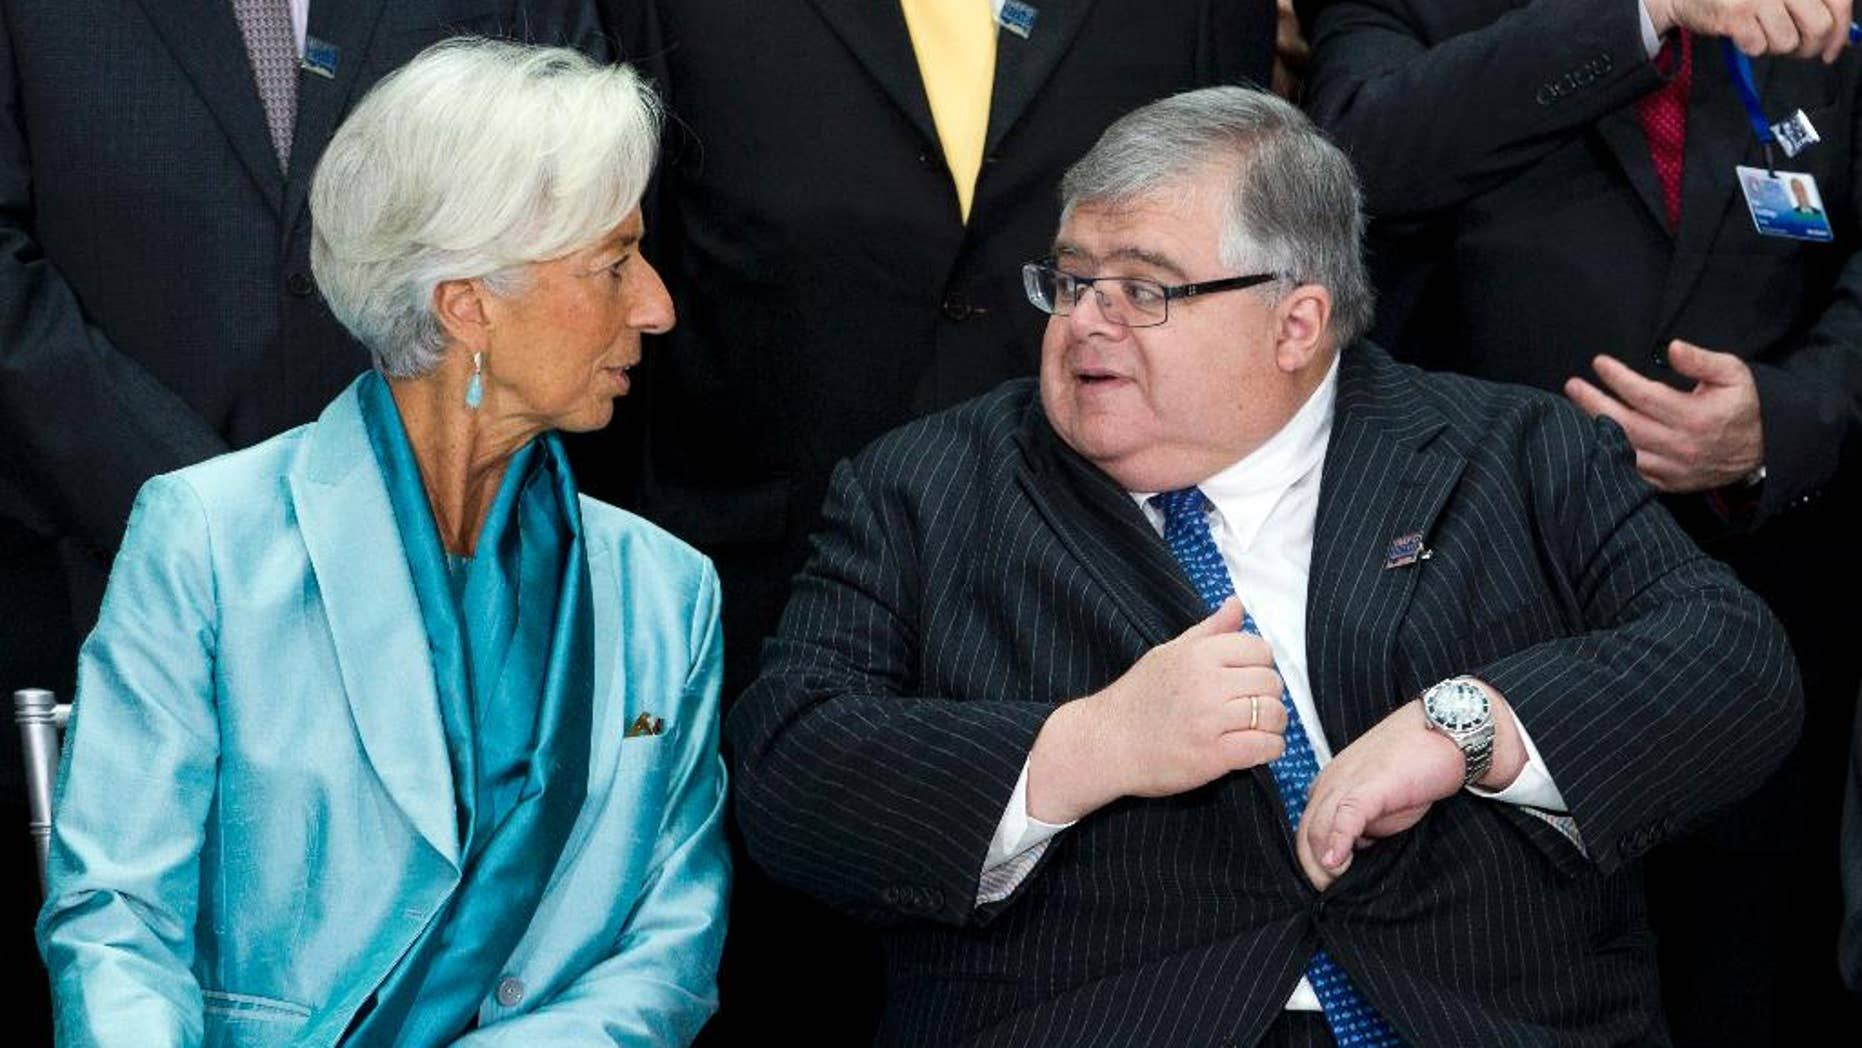 FILE - In this Oct. 8, 2016 file photo, International Monetary and Financial Committee Chair Governor of the Bank of Mexico Agustin Carstens, speaks with International Monetary Fund (IMF) Managing Director Christine Lagarde during the IMF Governors group photo at IMF headquarters in Washington.  Carstens said Thursday, Dec. 1, 2016, he is resigning to become the new general manager of the Bank for International Settlements in Switzerland. ( AP Photo/Jose Luis Magana, File)